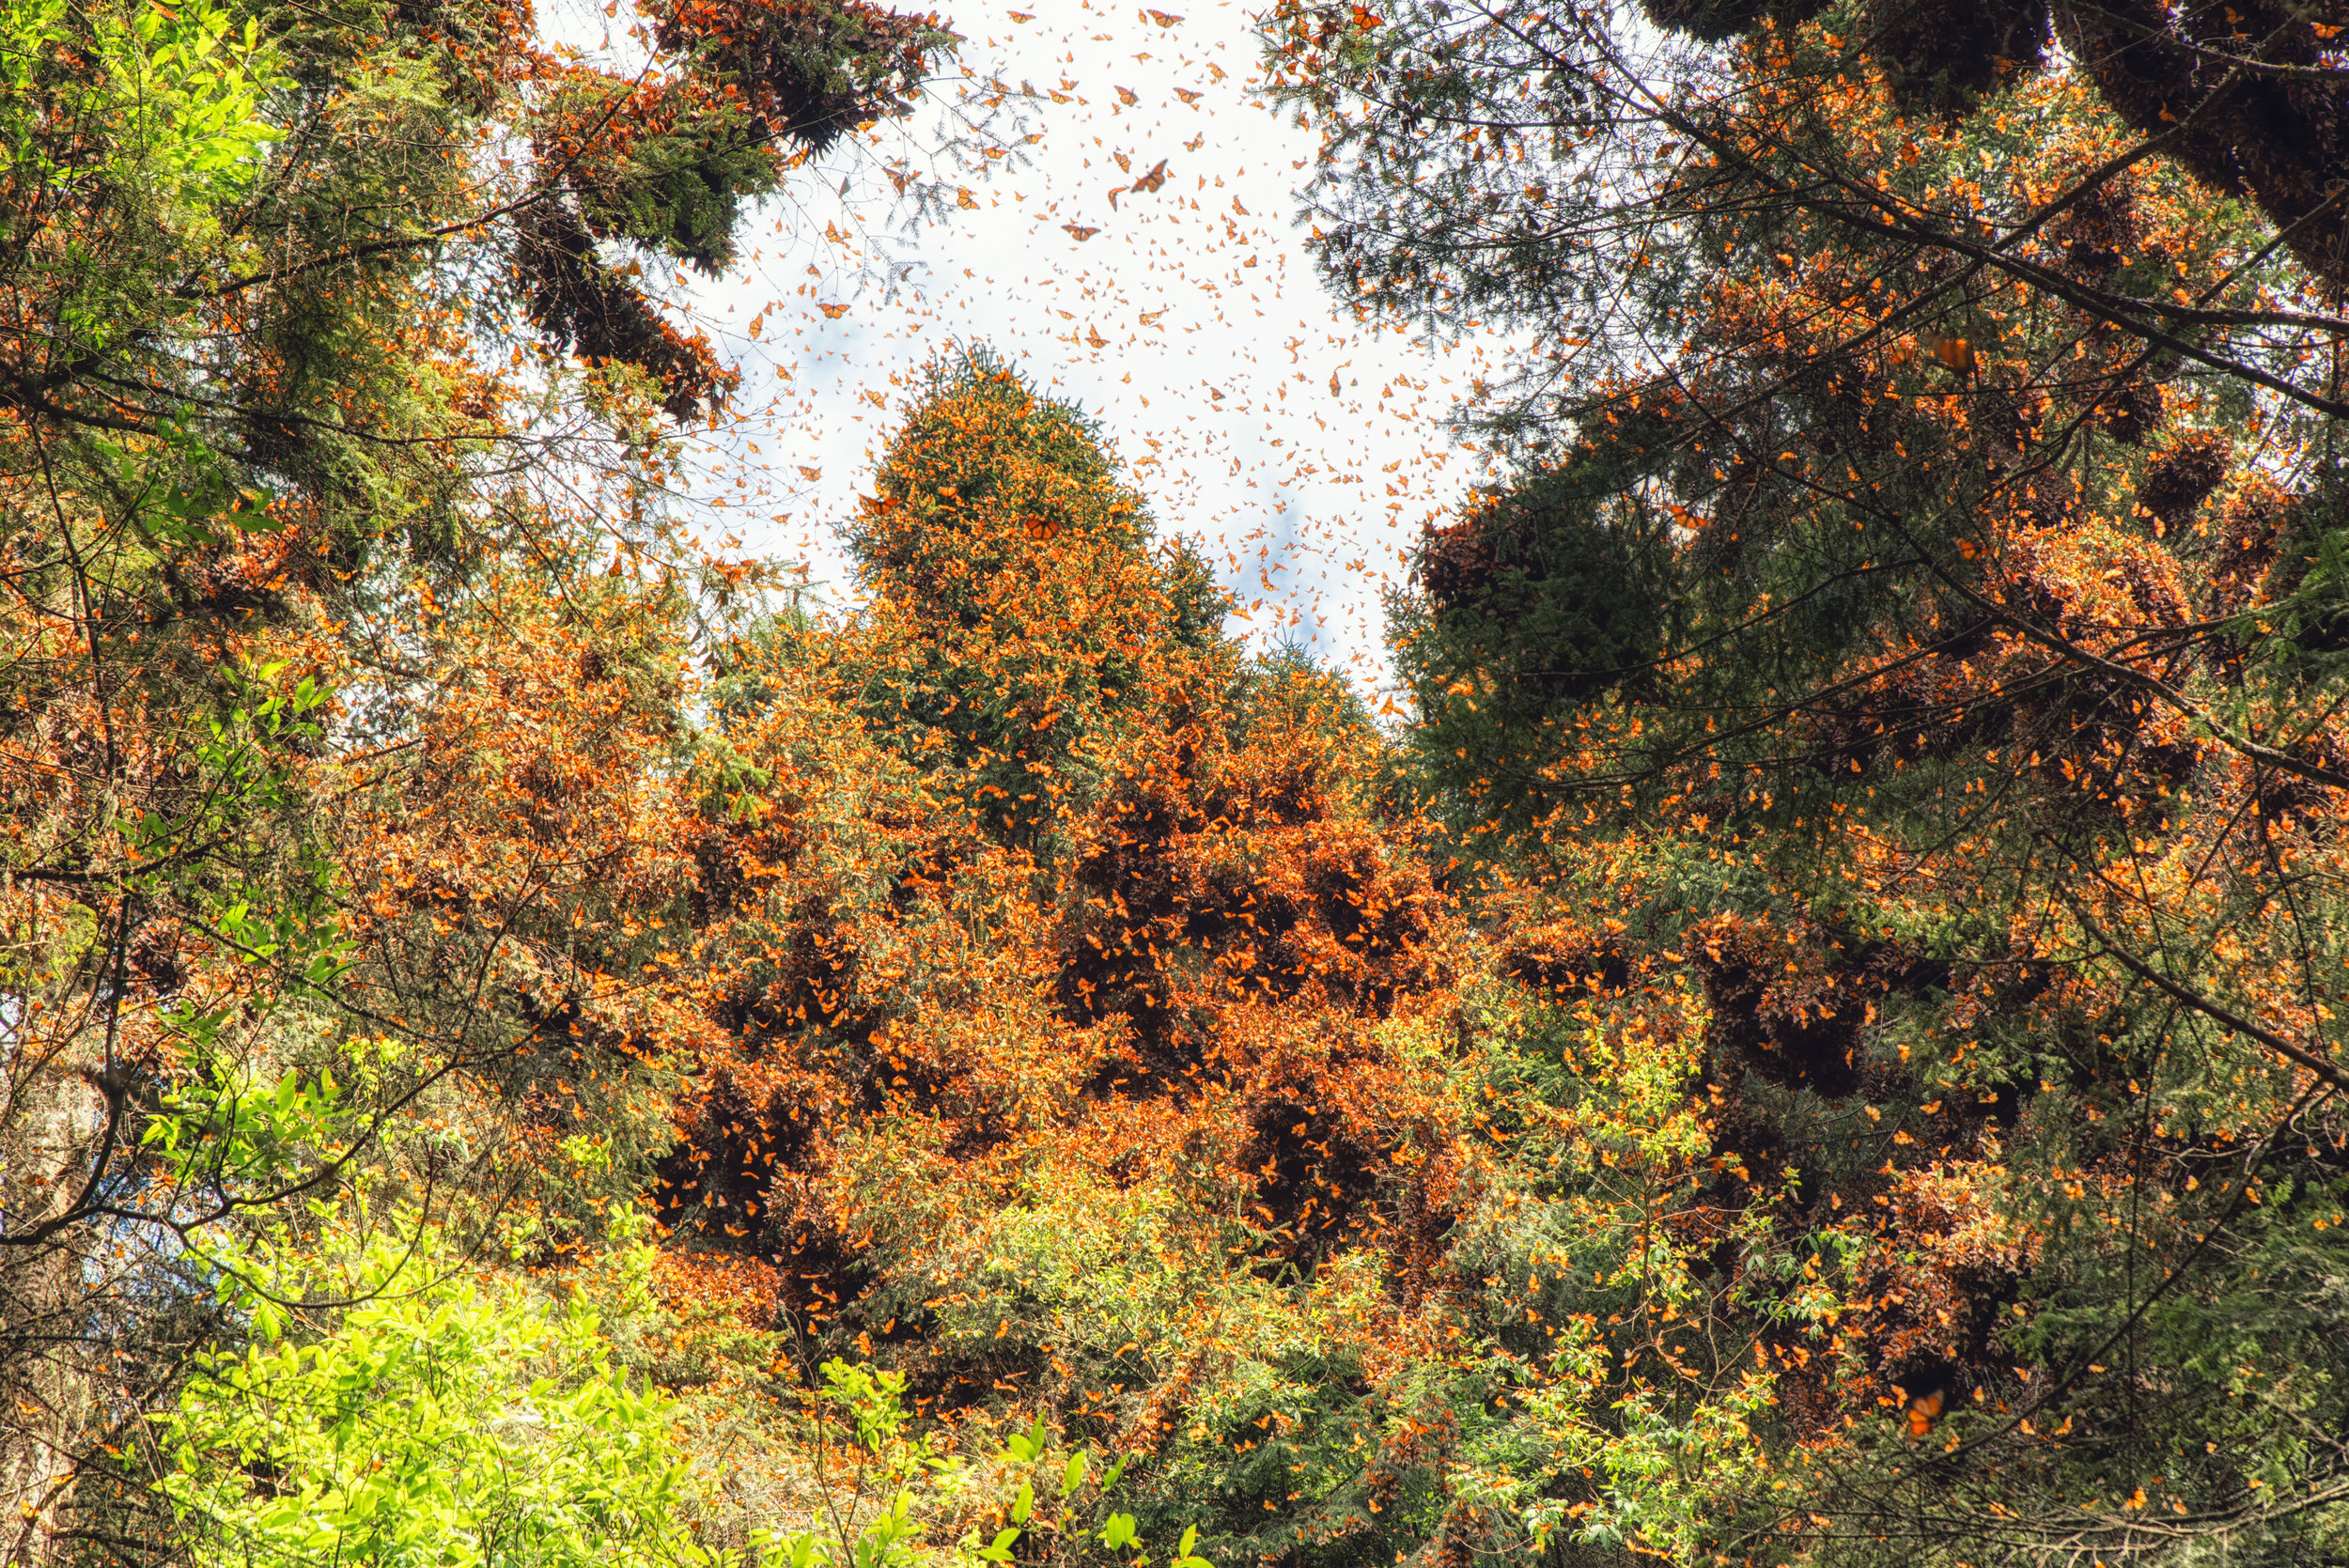 PICTURED:  Monarch Butterflies Spring Awakening in Mexico's Monarch Reserve, another dramatic location that has experienced a reduction in deforestation as a result of PES strategies